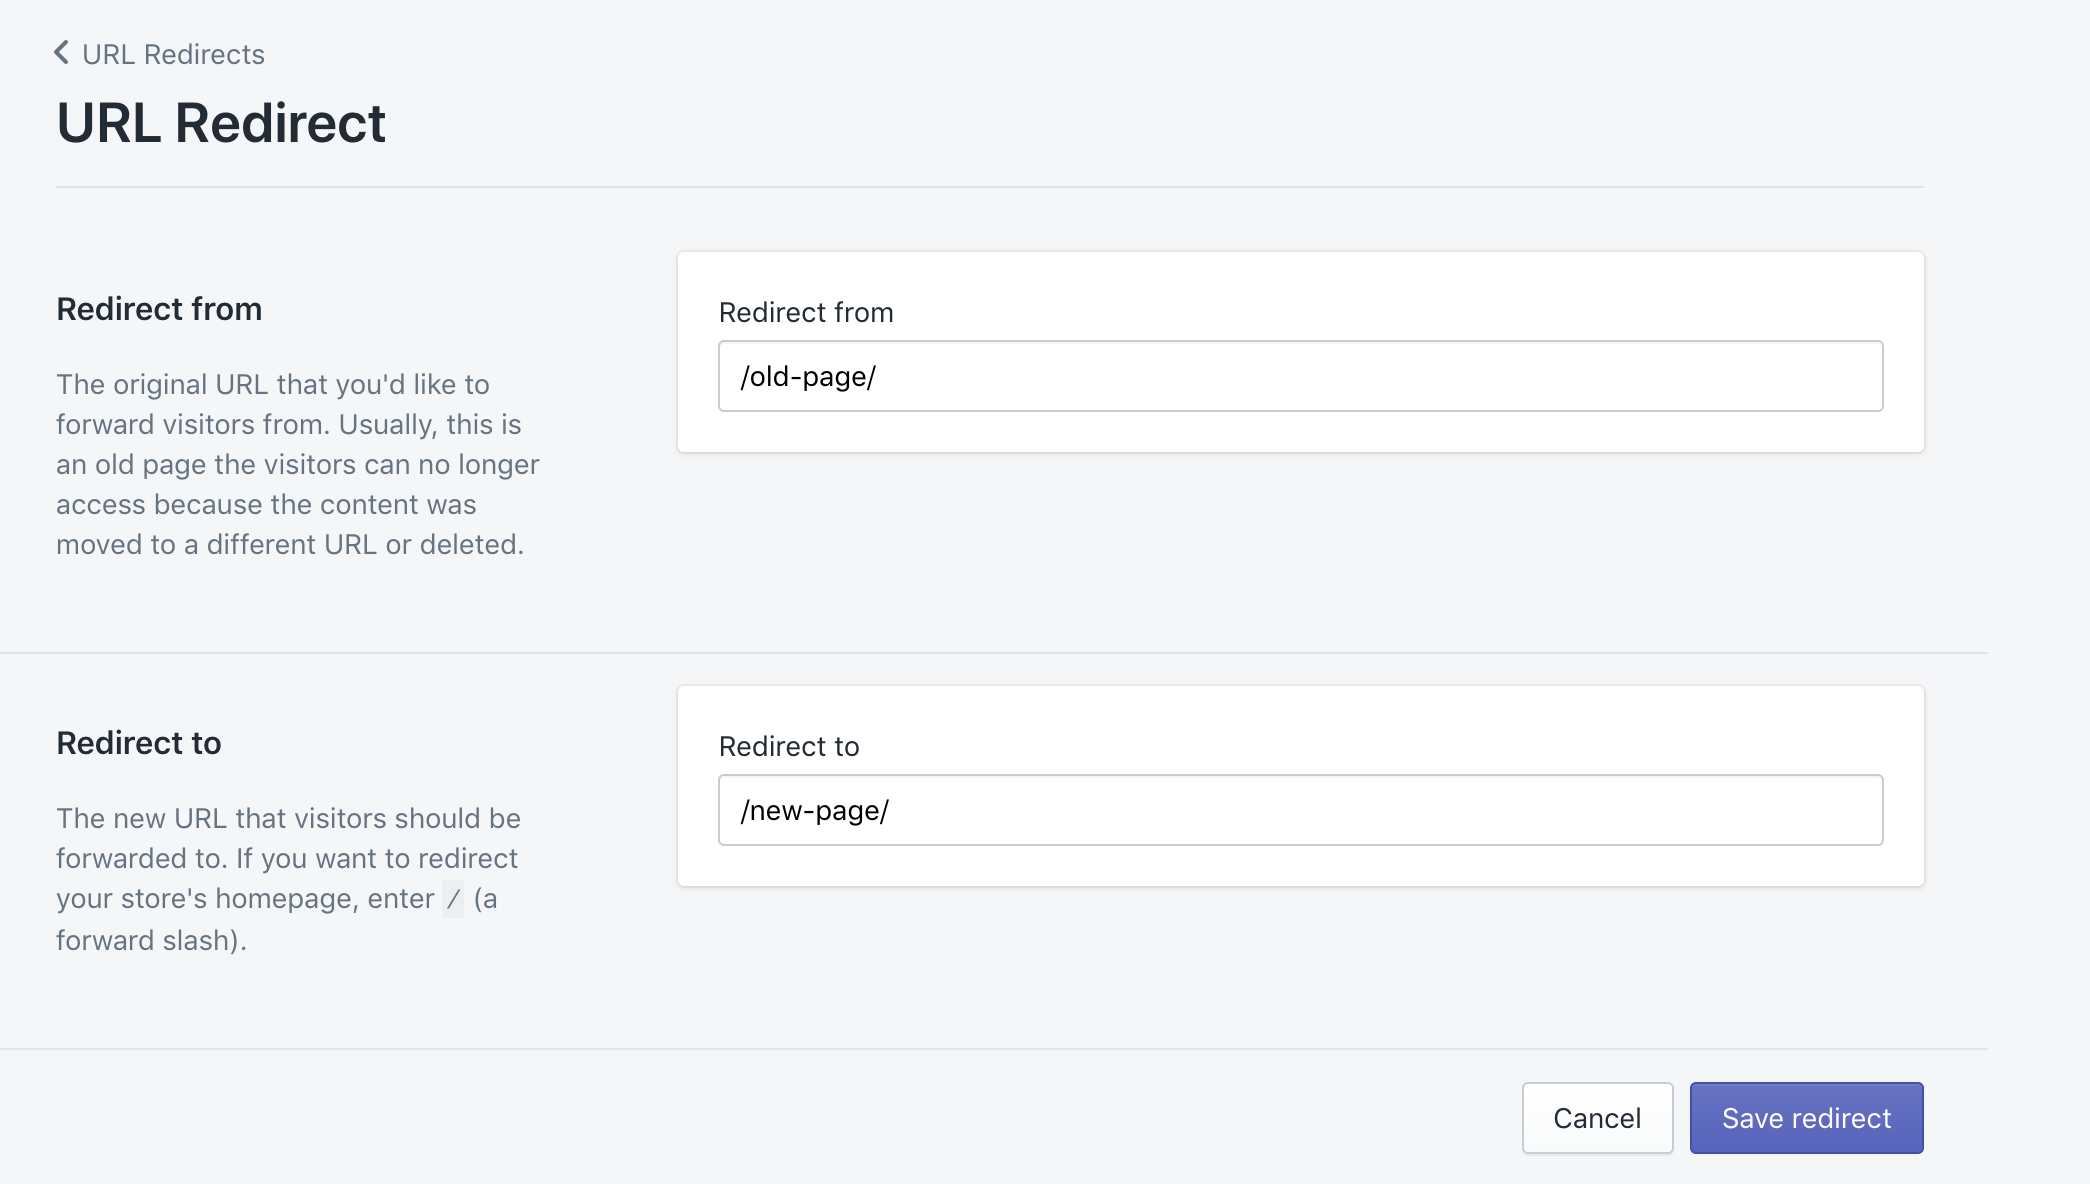 Shopify URL Redirect fields to add URLs